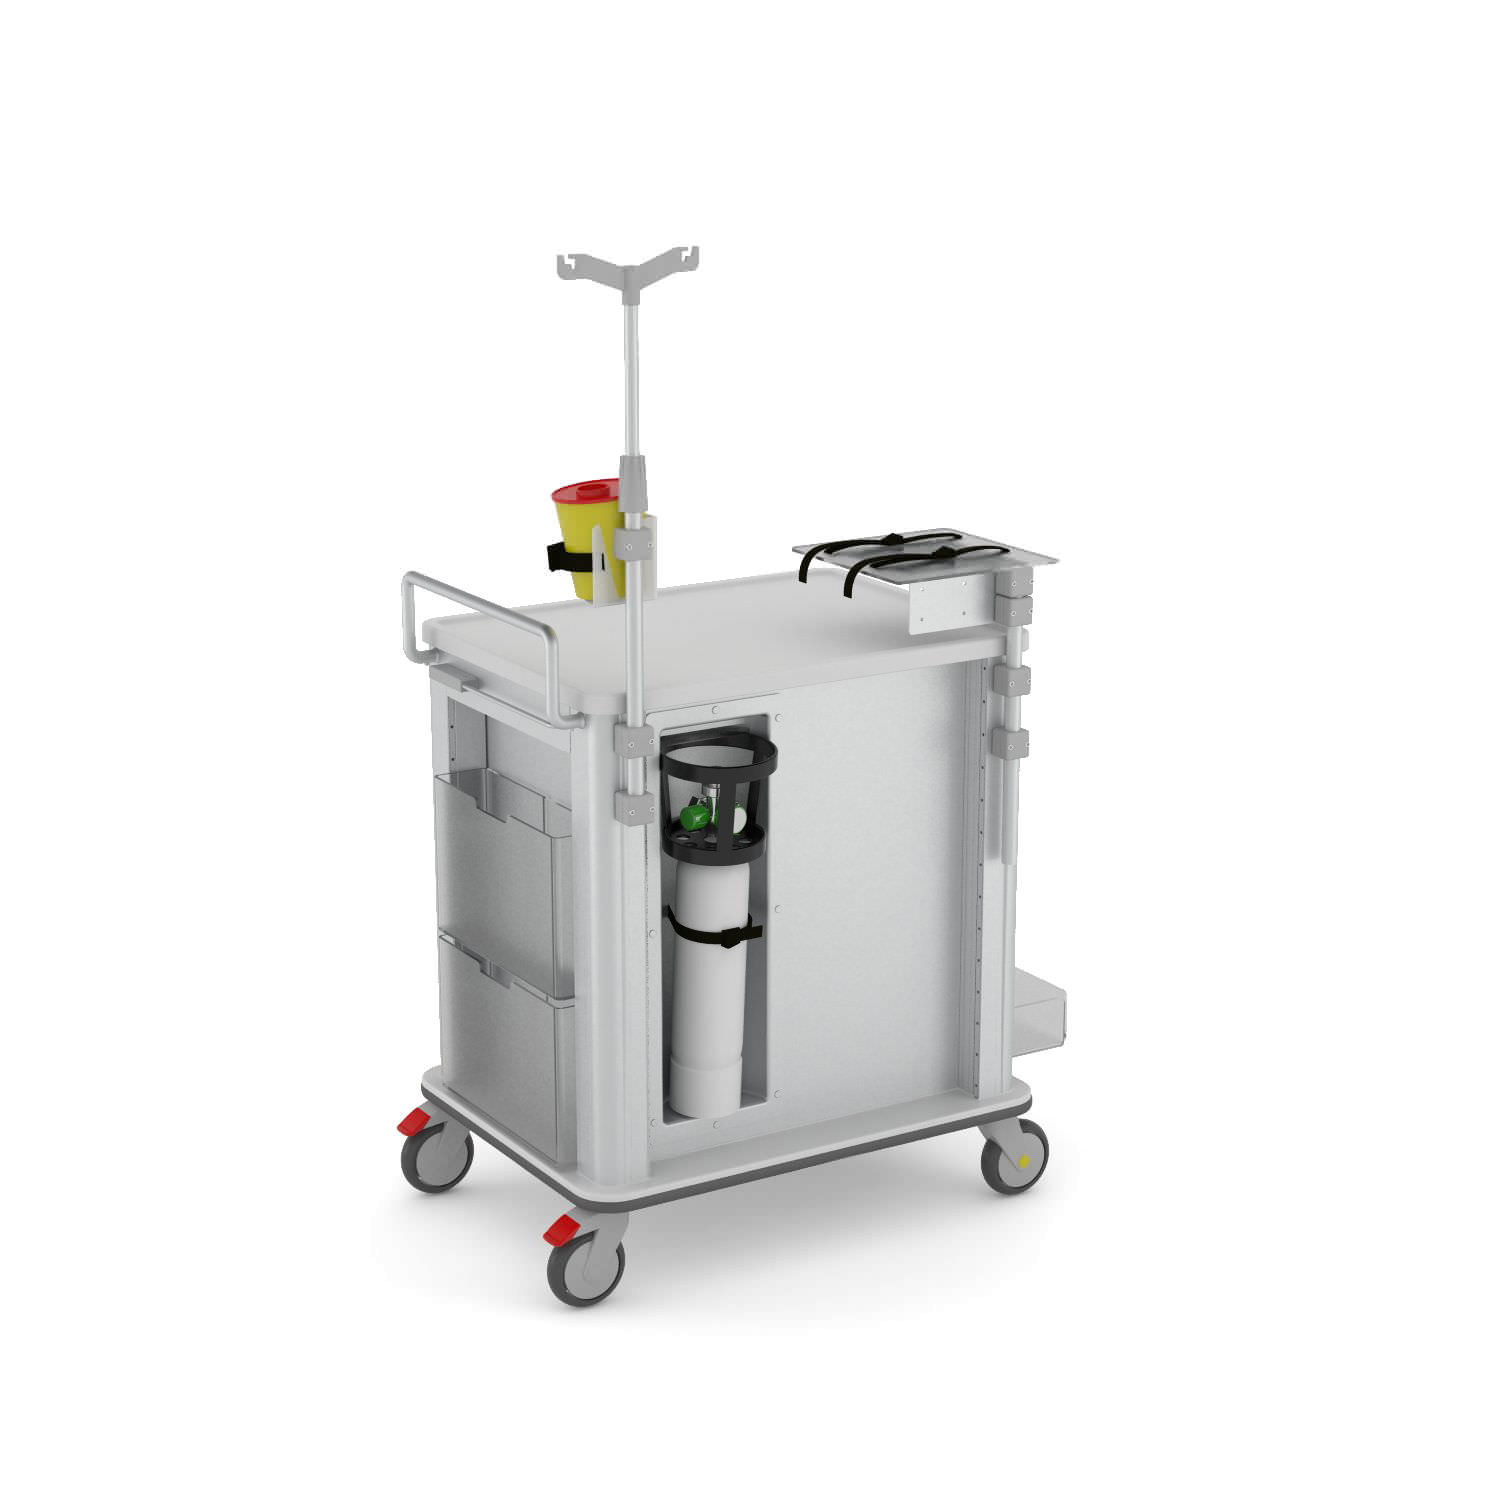 Emergency trolley / storage / defibrillator / with oxygen